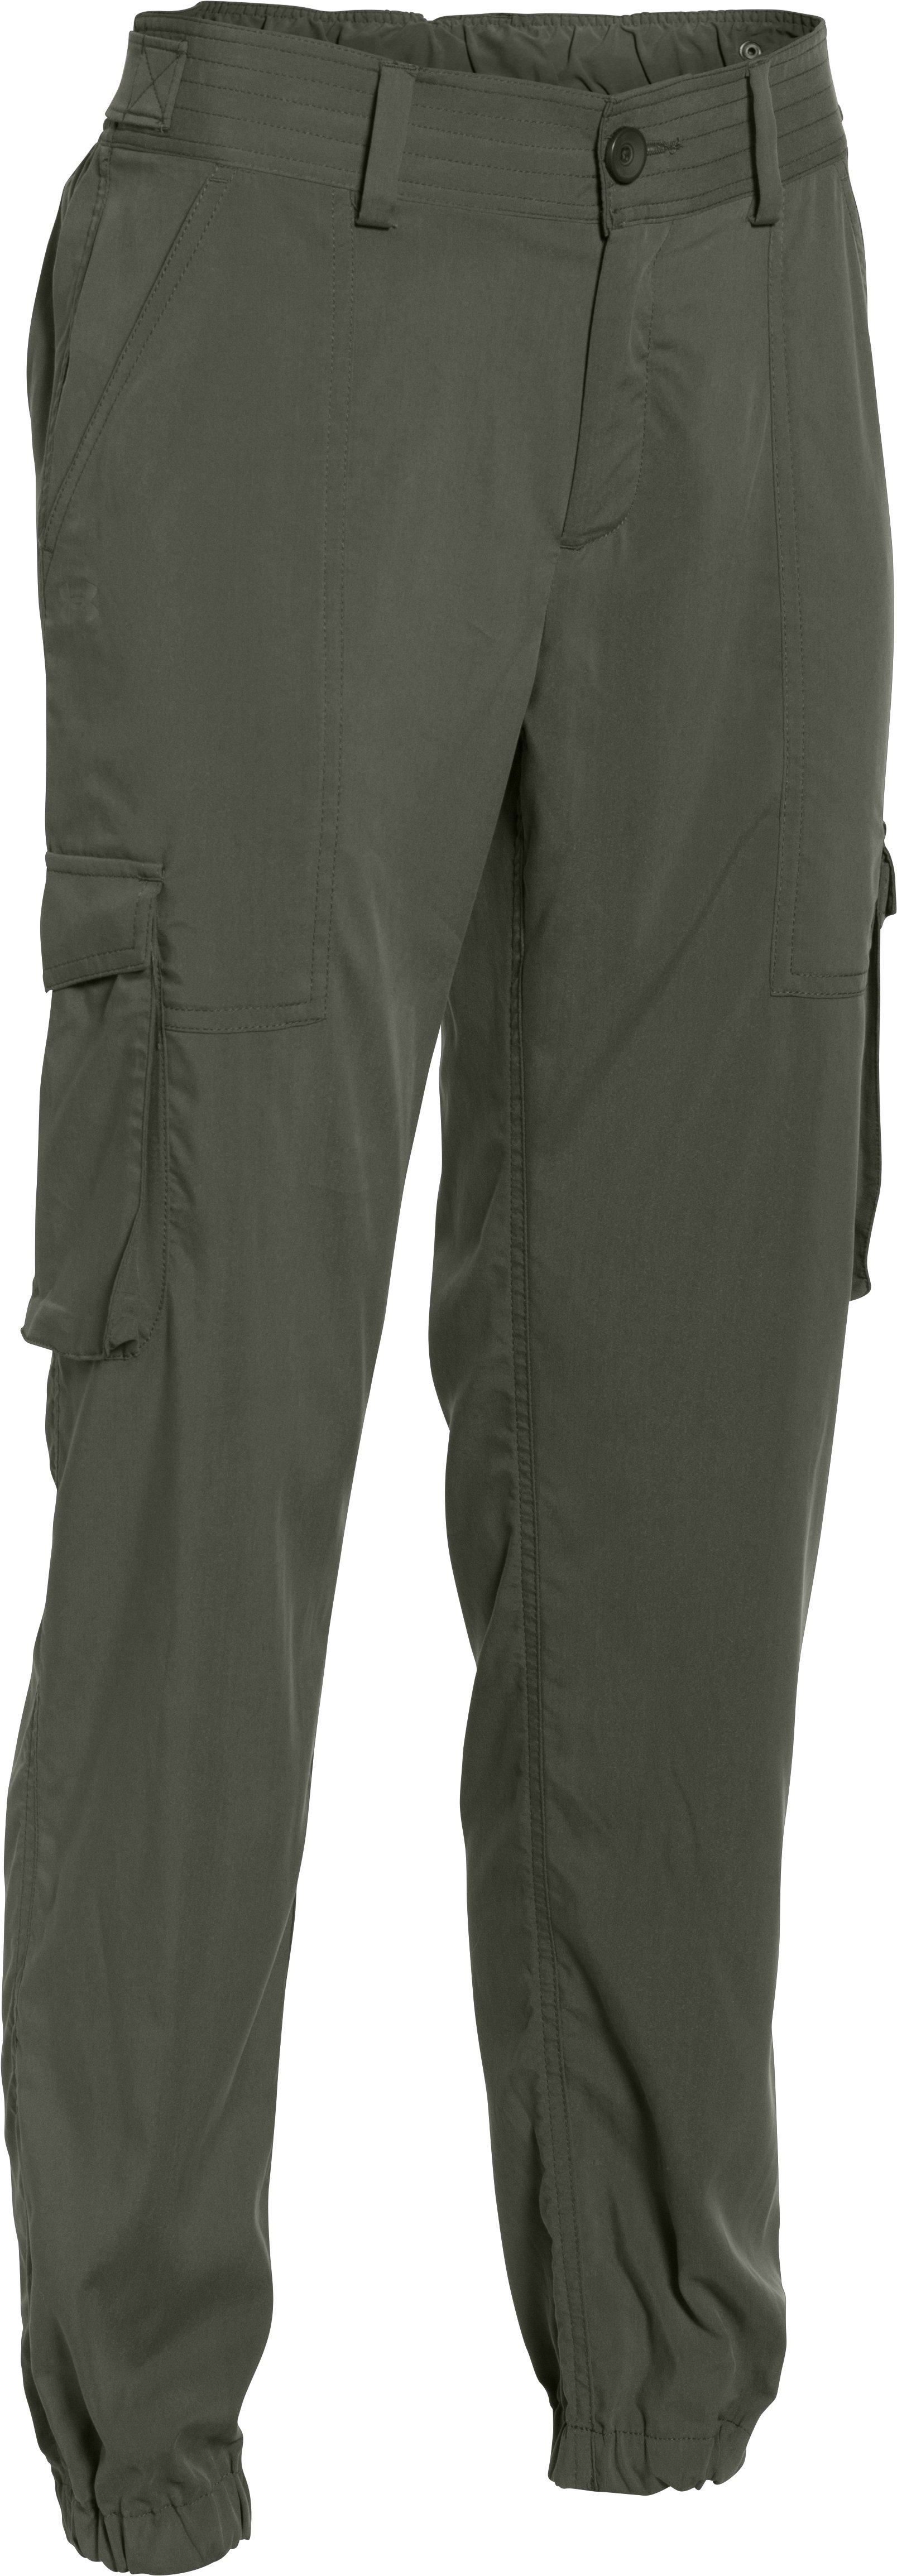 Women's UA Slim Air Woven Cargo Pants, DOWNTOWN GREEN, undefined